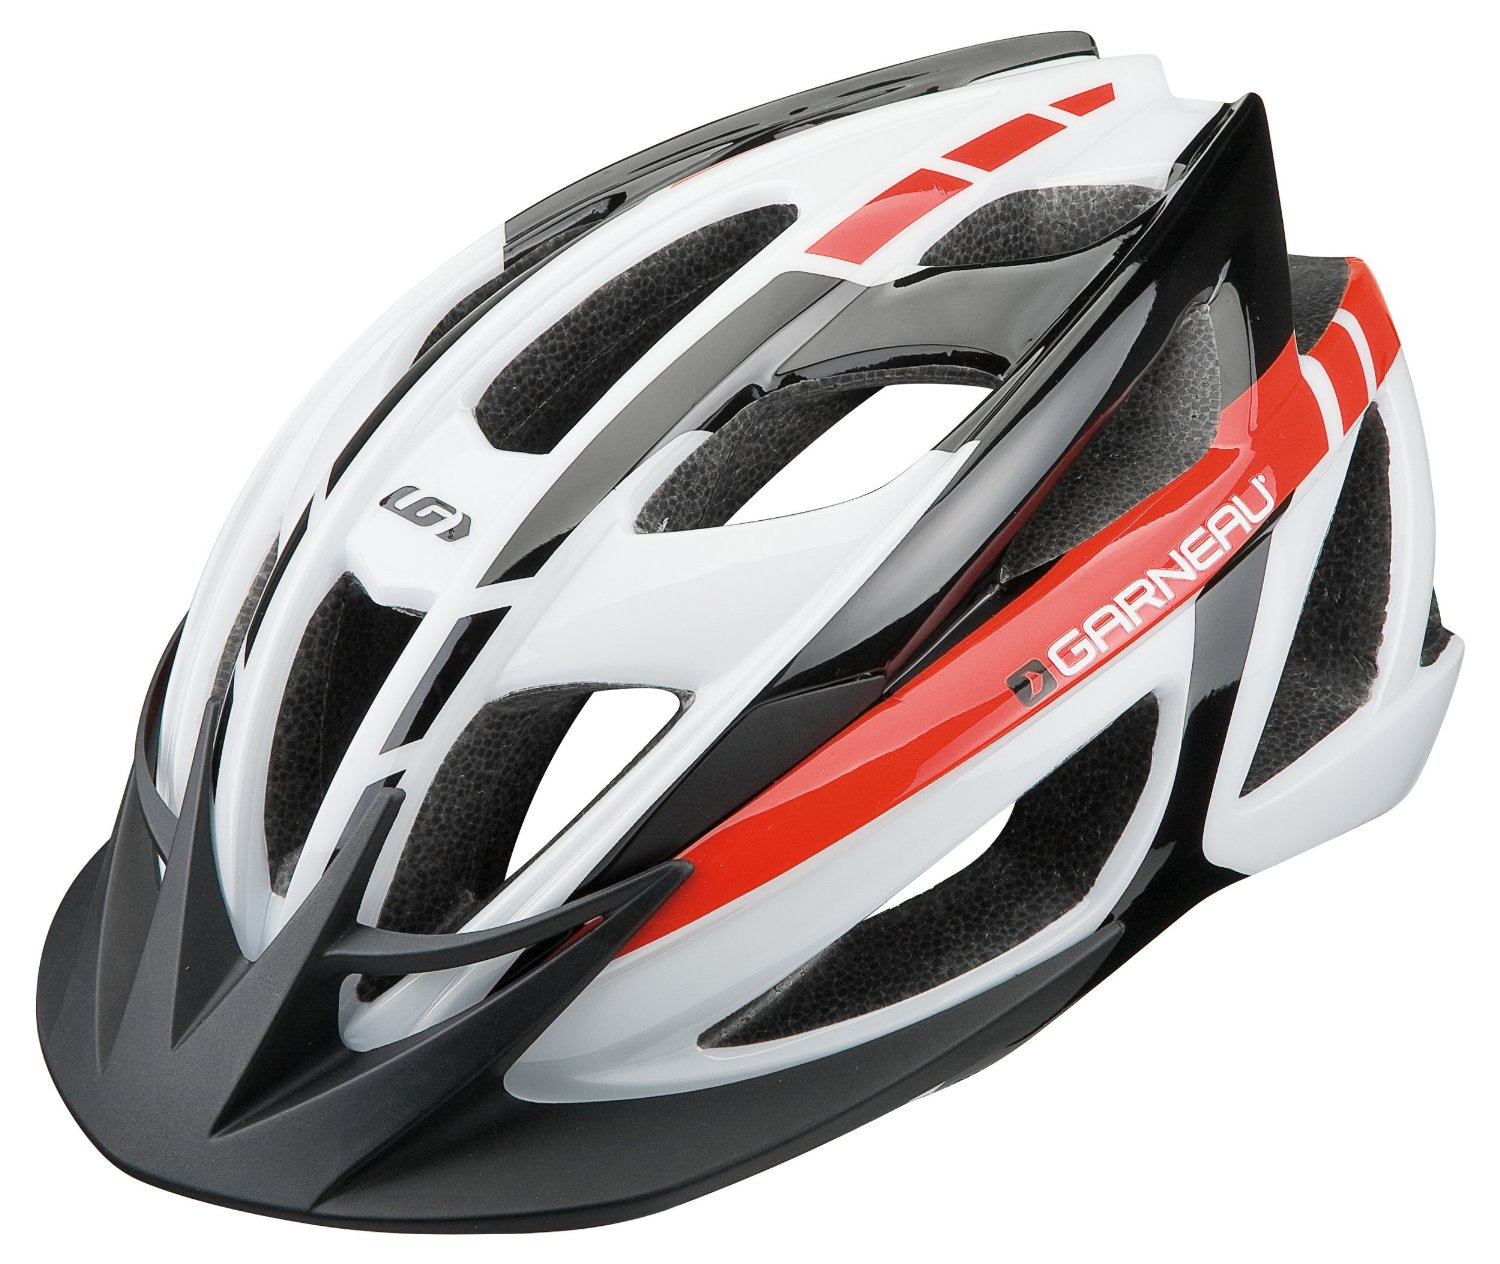 Sizes of Garneau Bicycle Helmets